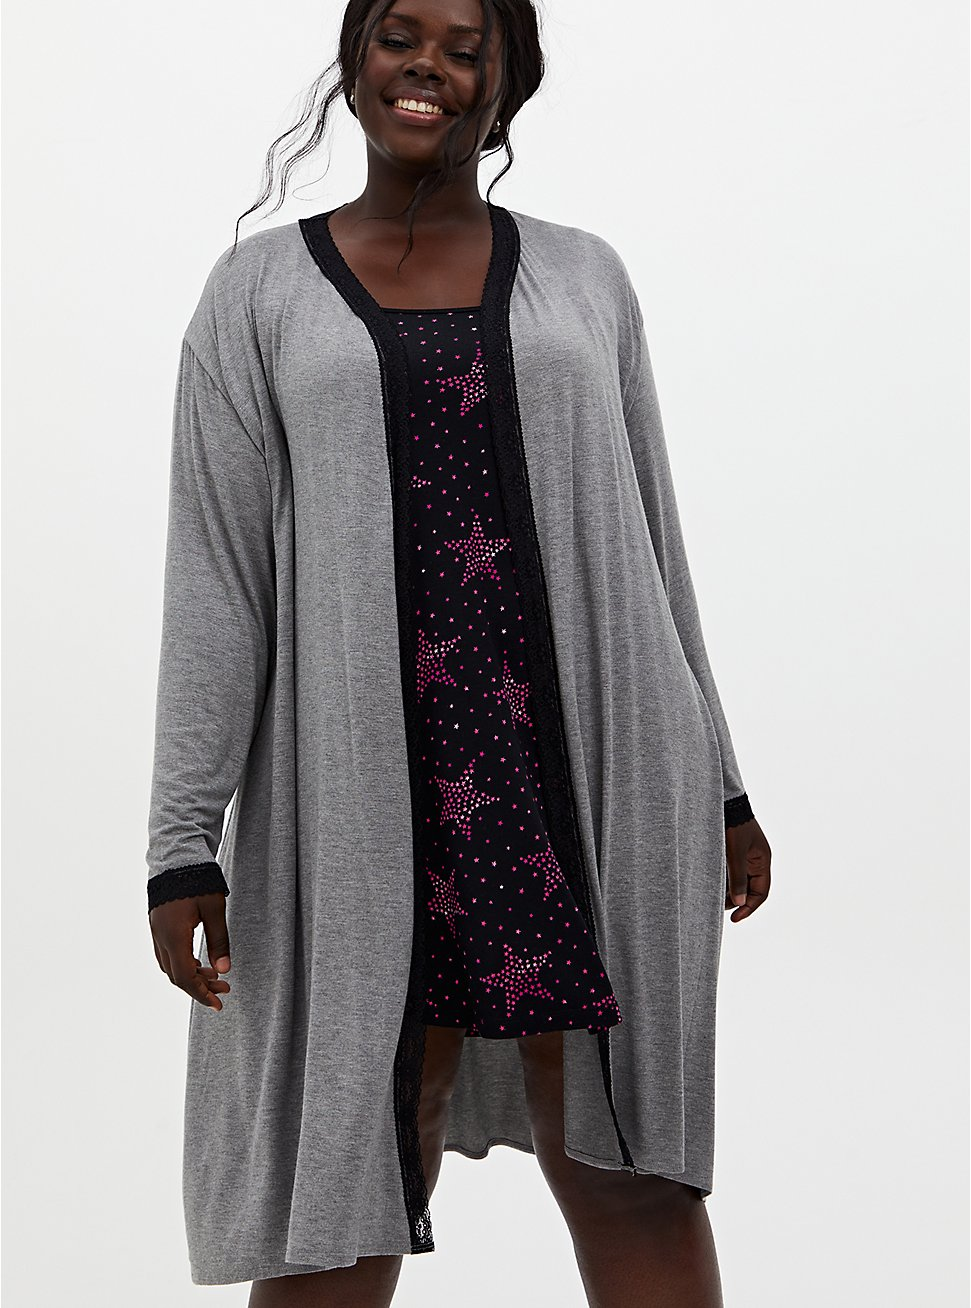 Super Soft Grey Lace Trim Sleep Robe, GREY, hi-res